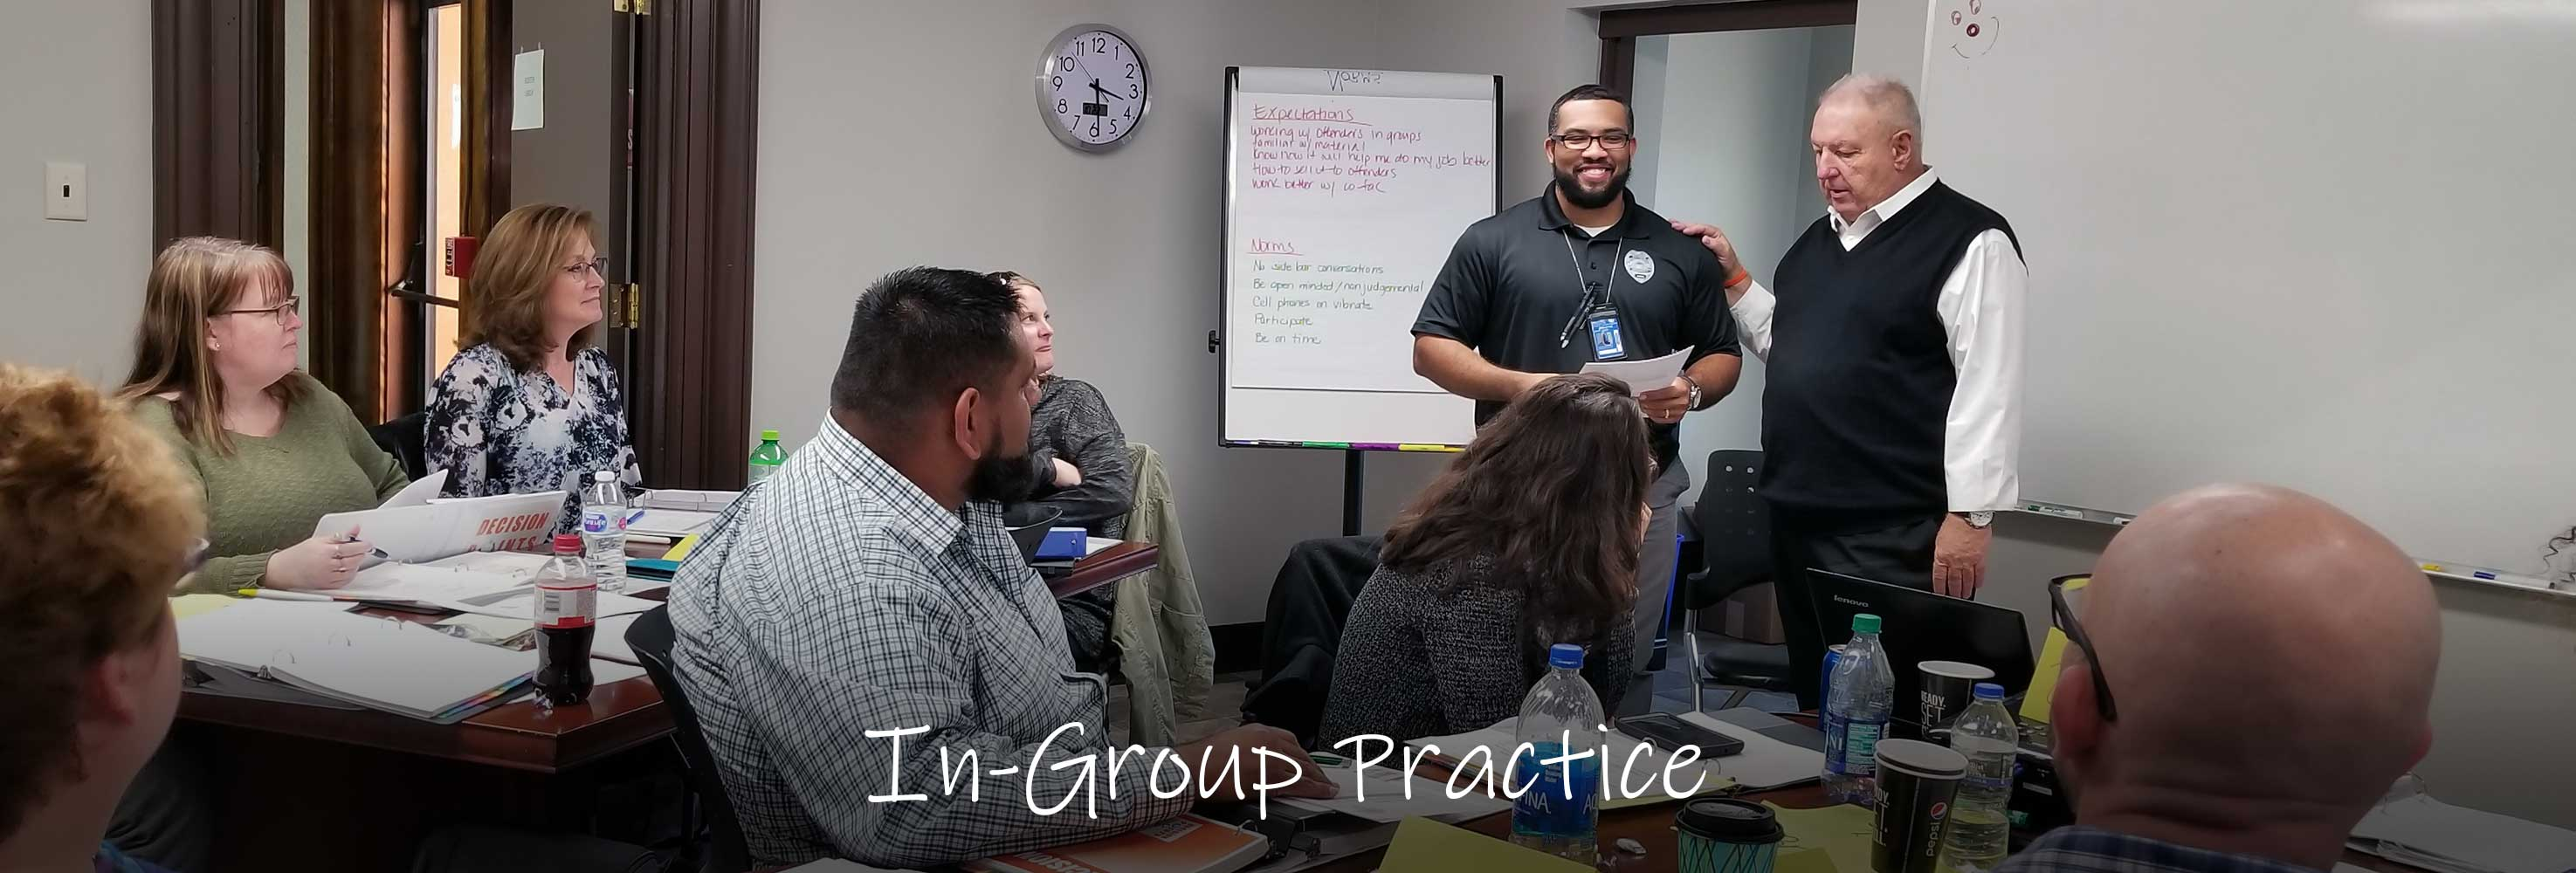 In-group practice